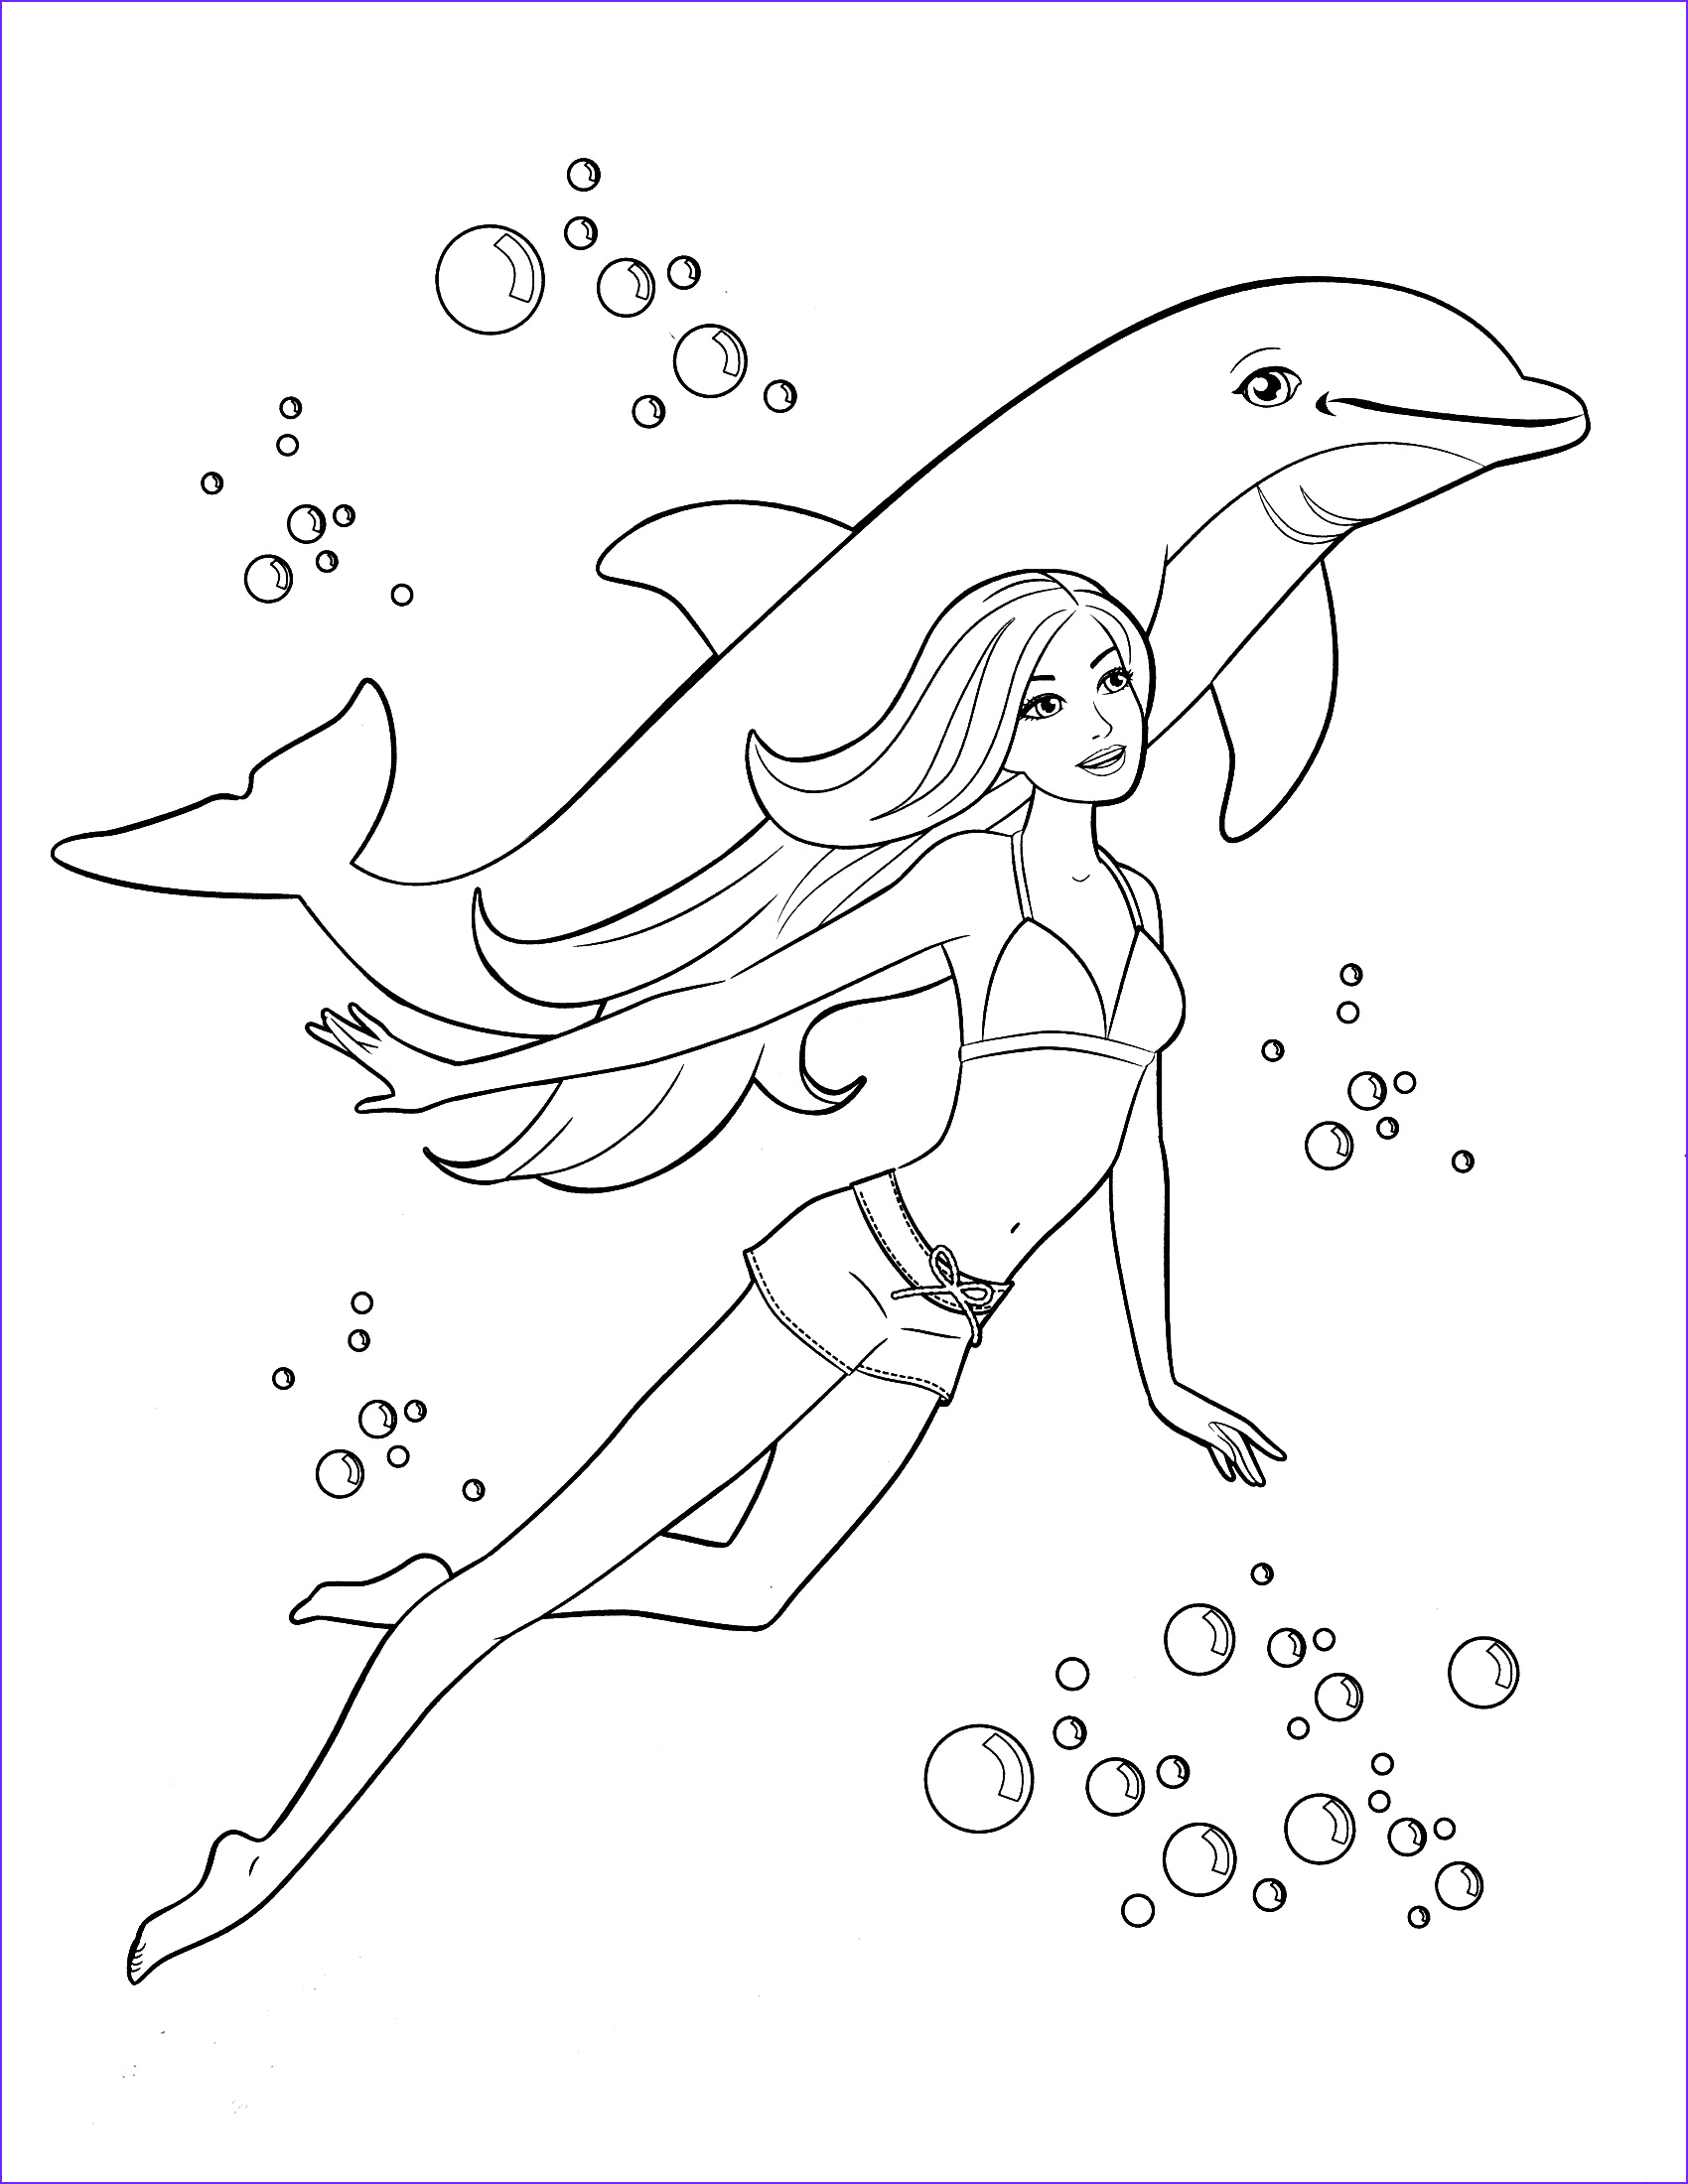 Barby Coloring Cool Gallery 85 Barbie Coloring Pages For Girls Barbie Princess